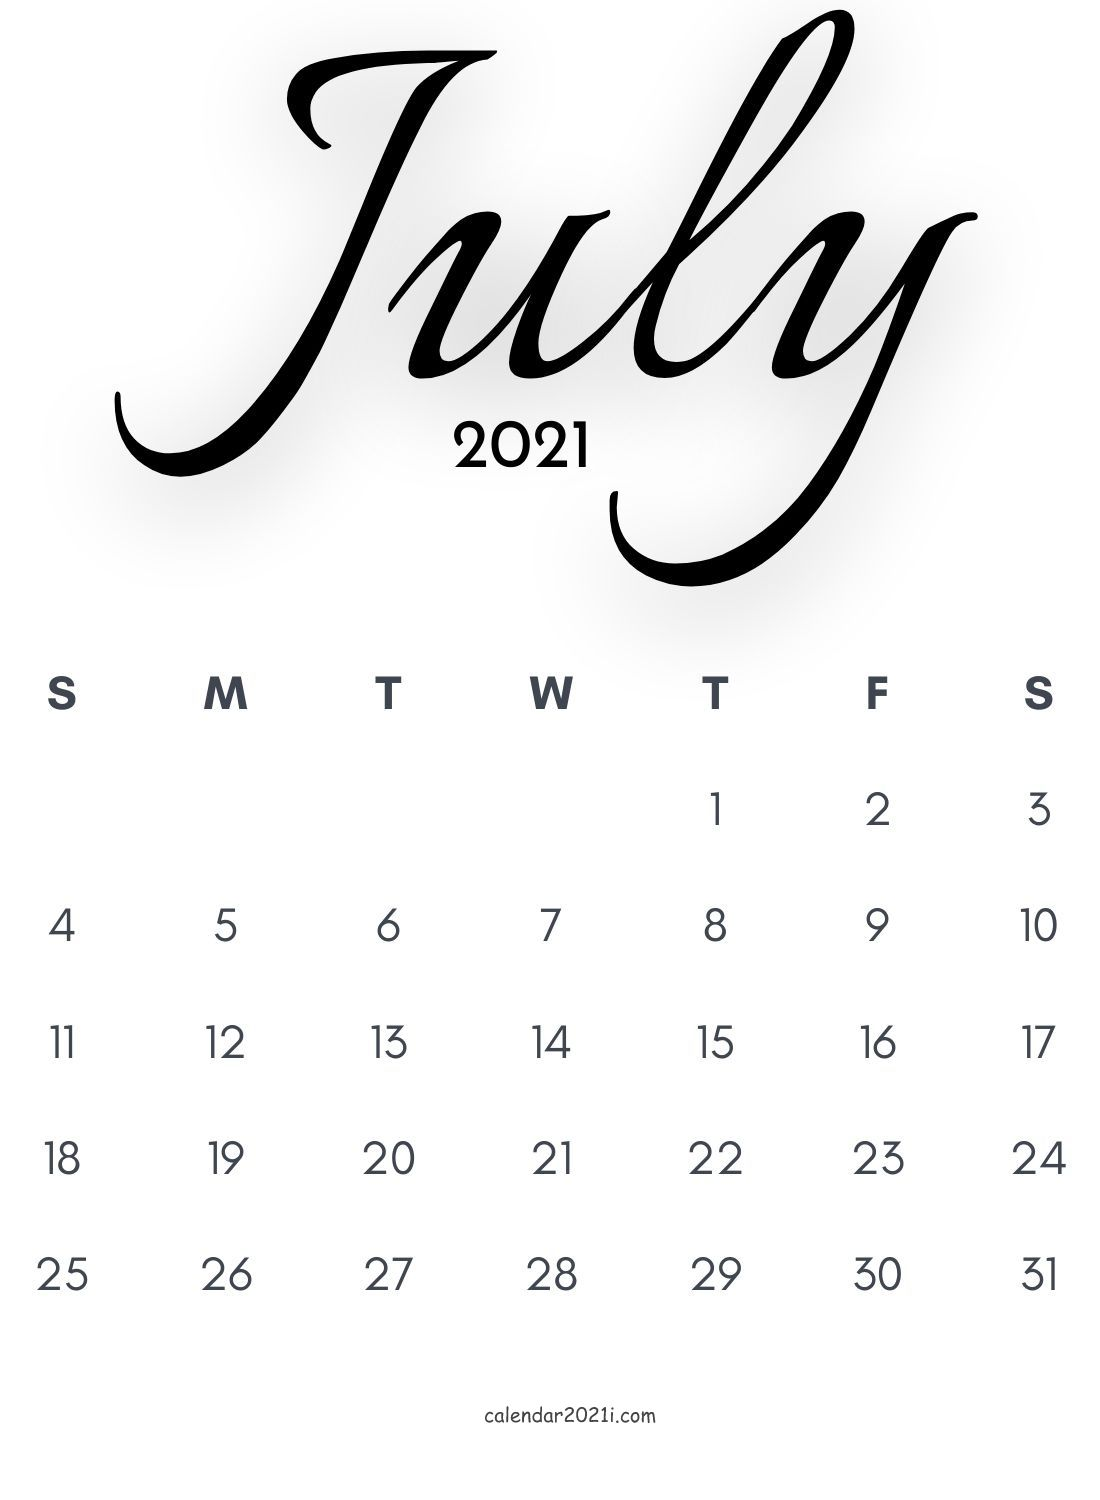 July 2021 Calligraphy Calendar